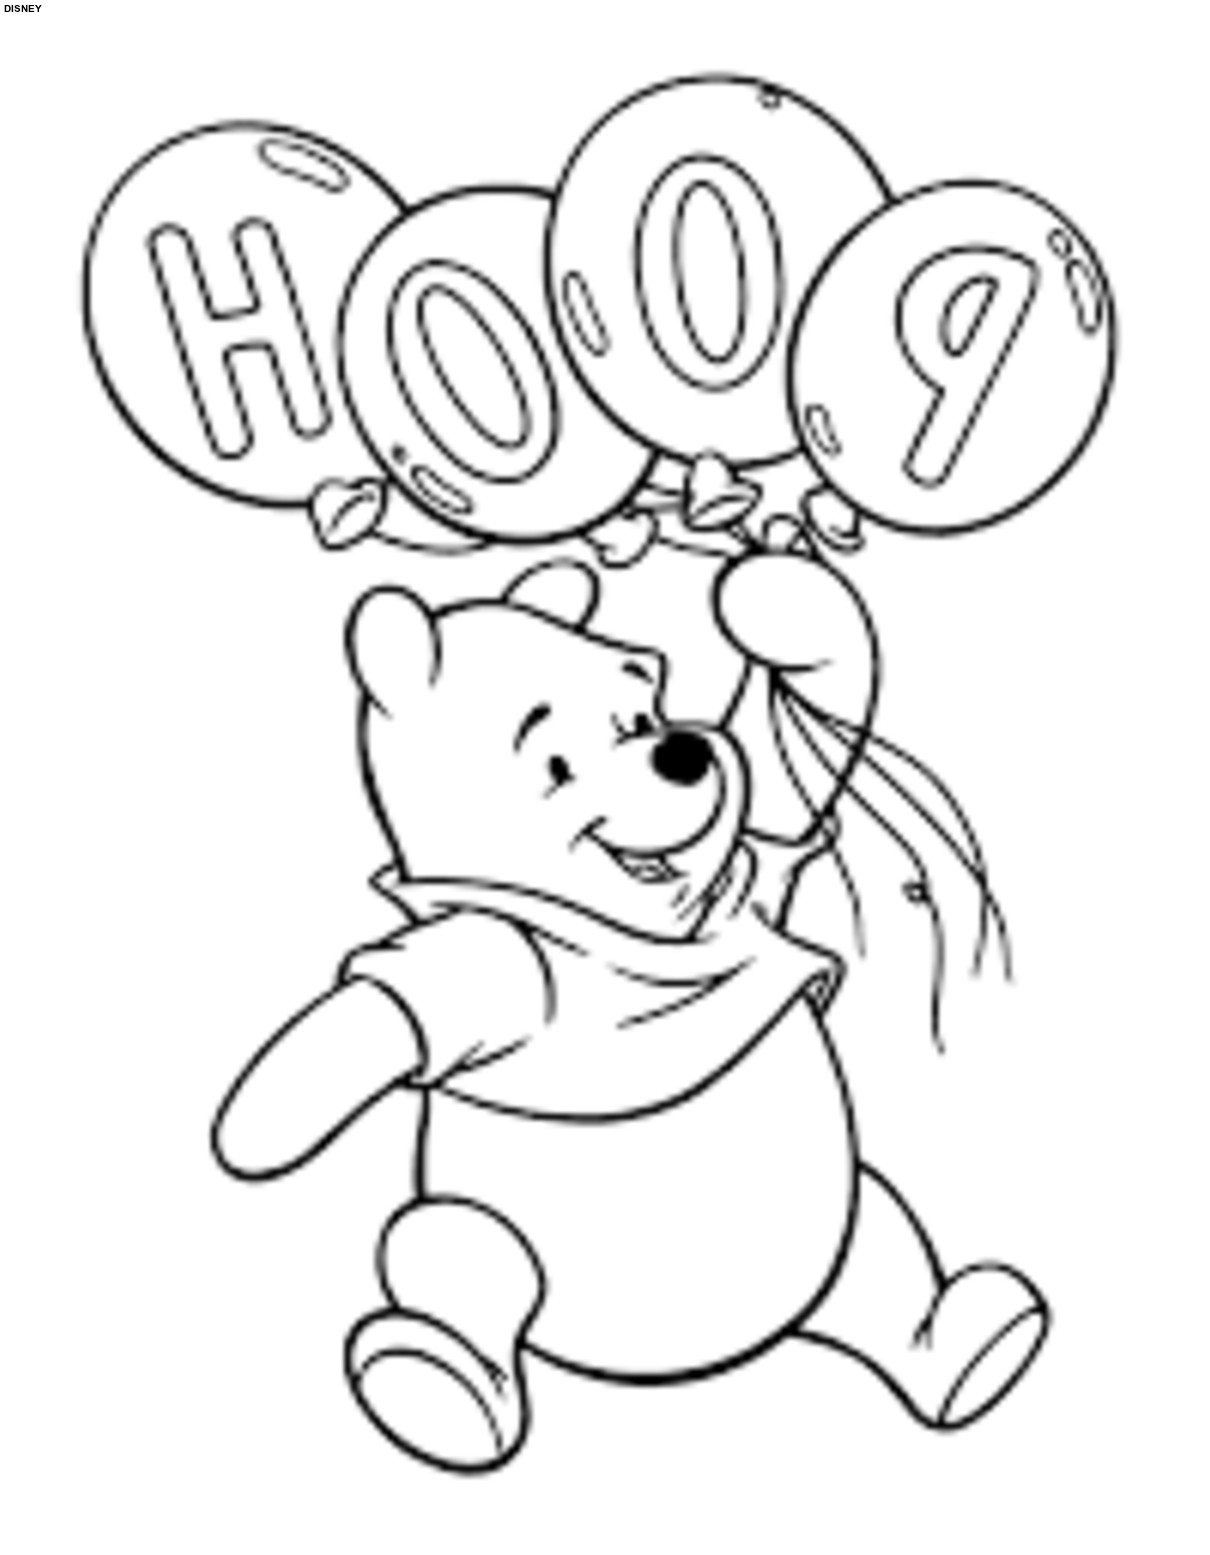 coloring cartoon characters black and white kids cartoons drawing at getdrawings free download cartoon white characters black coloring and